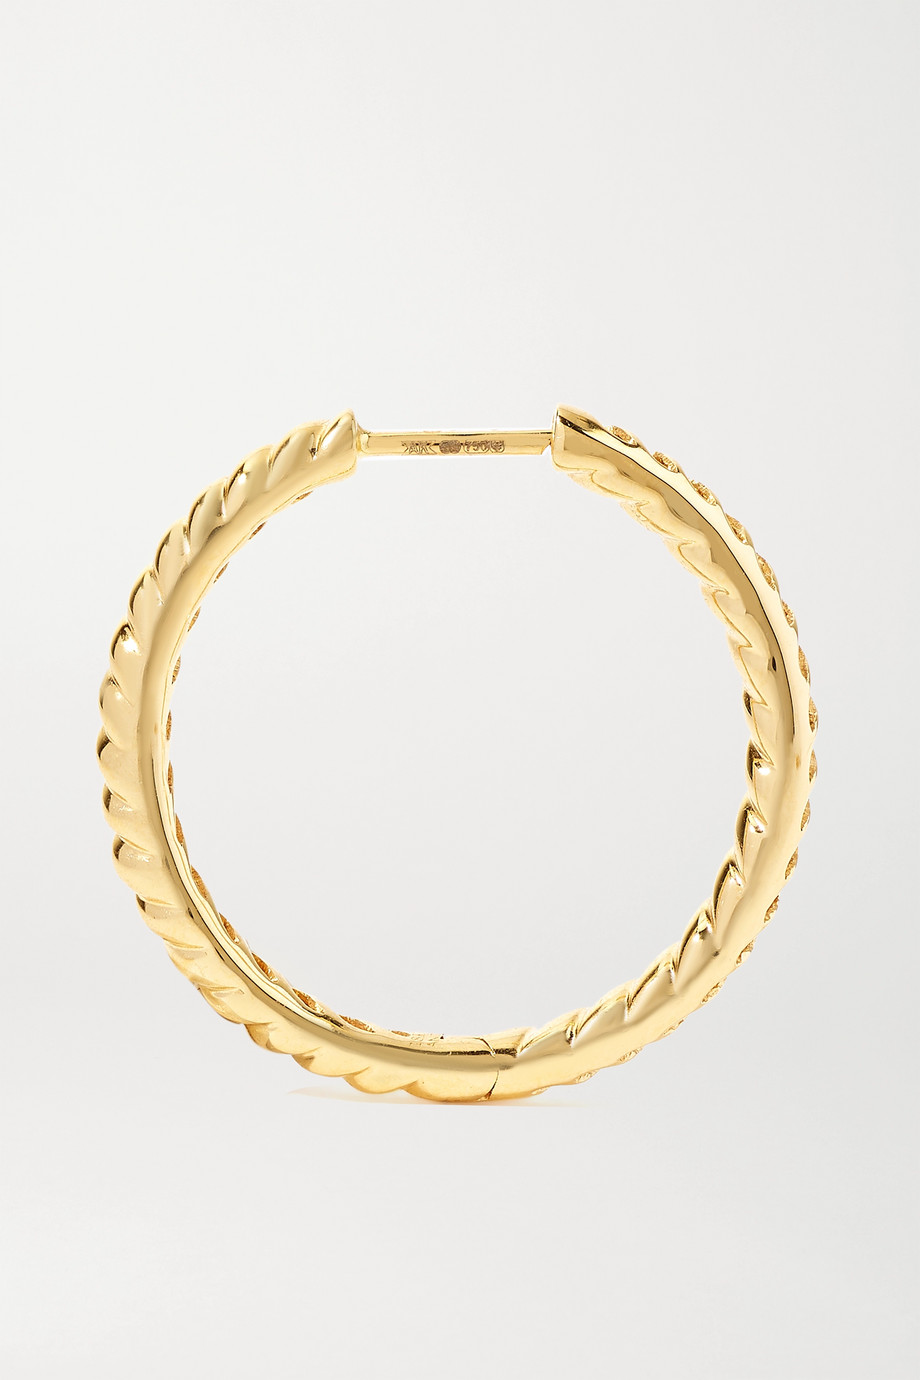 Anita Ko Zoe 18-karat gold hoop earrings